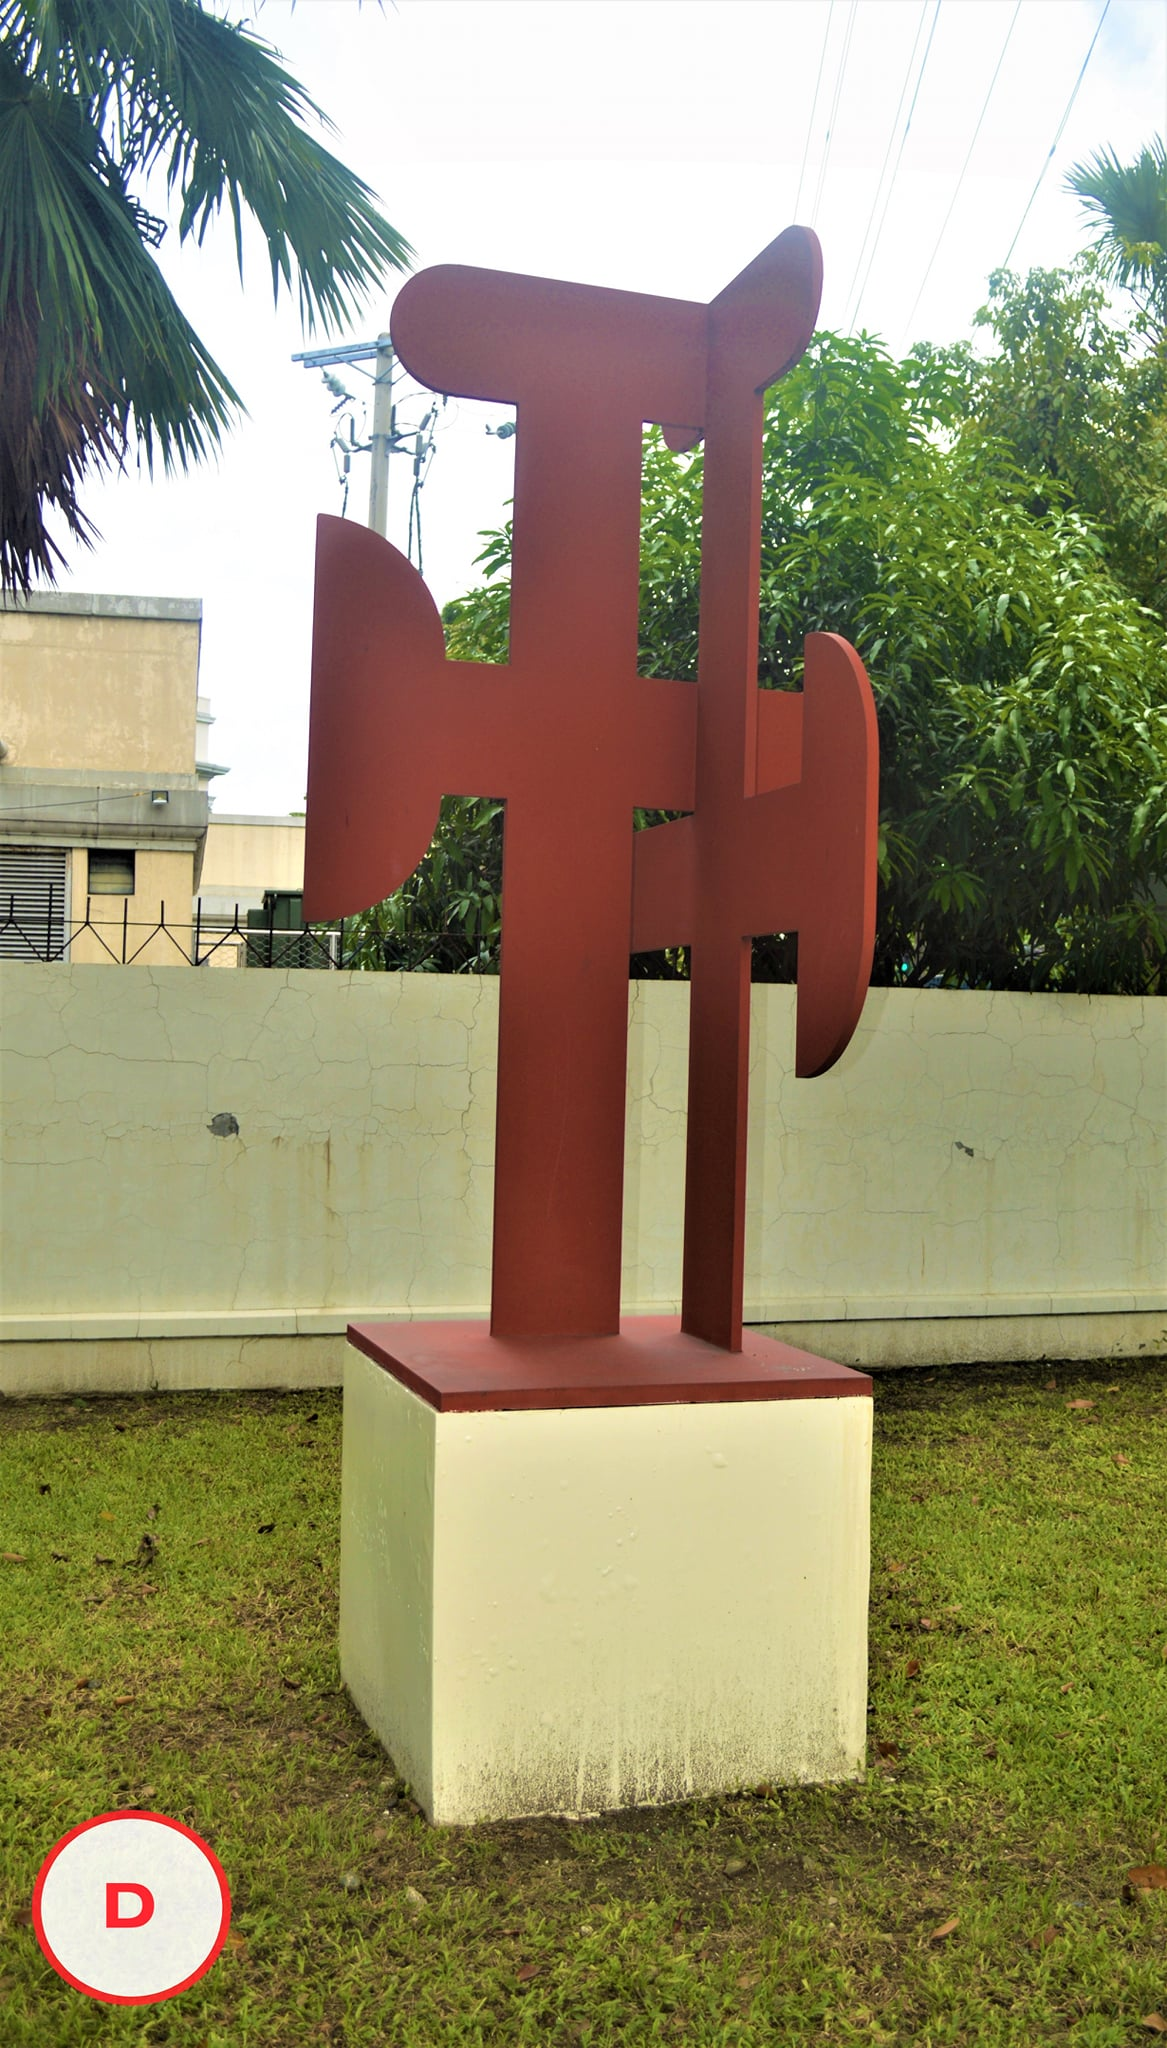 Outdoor Sculptures and Public Art Found in the National Museum of the Philippines Complex in Manila